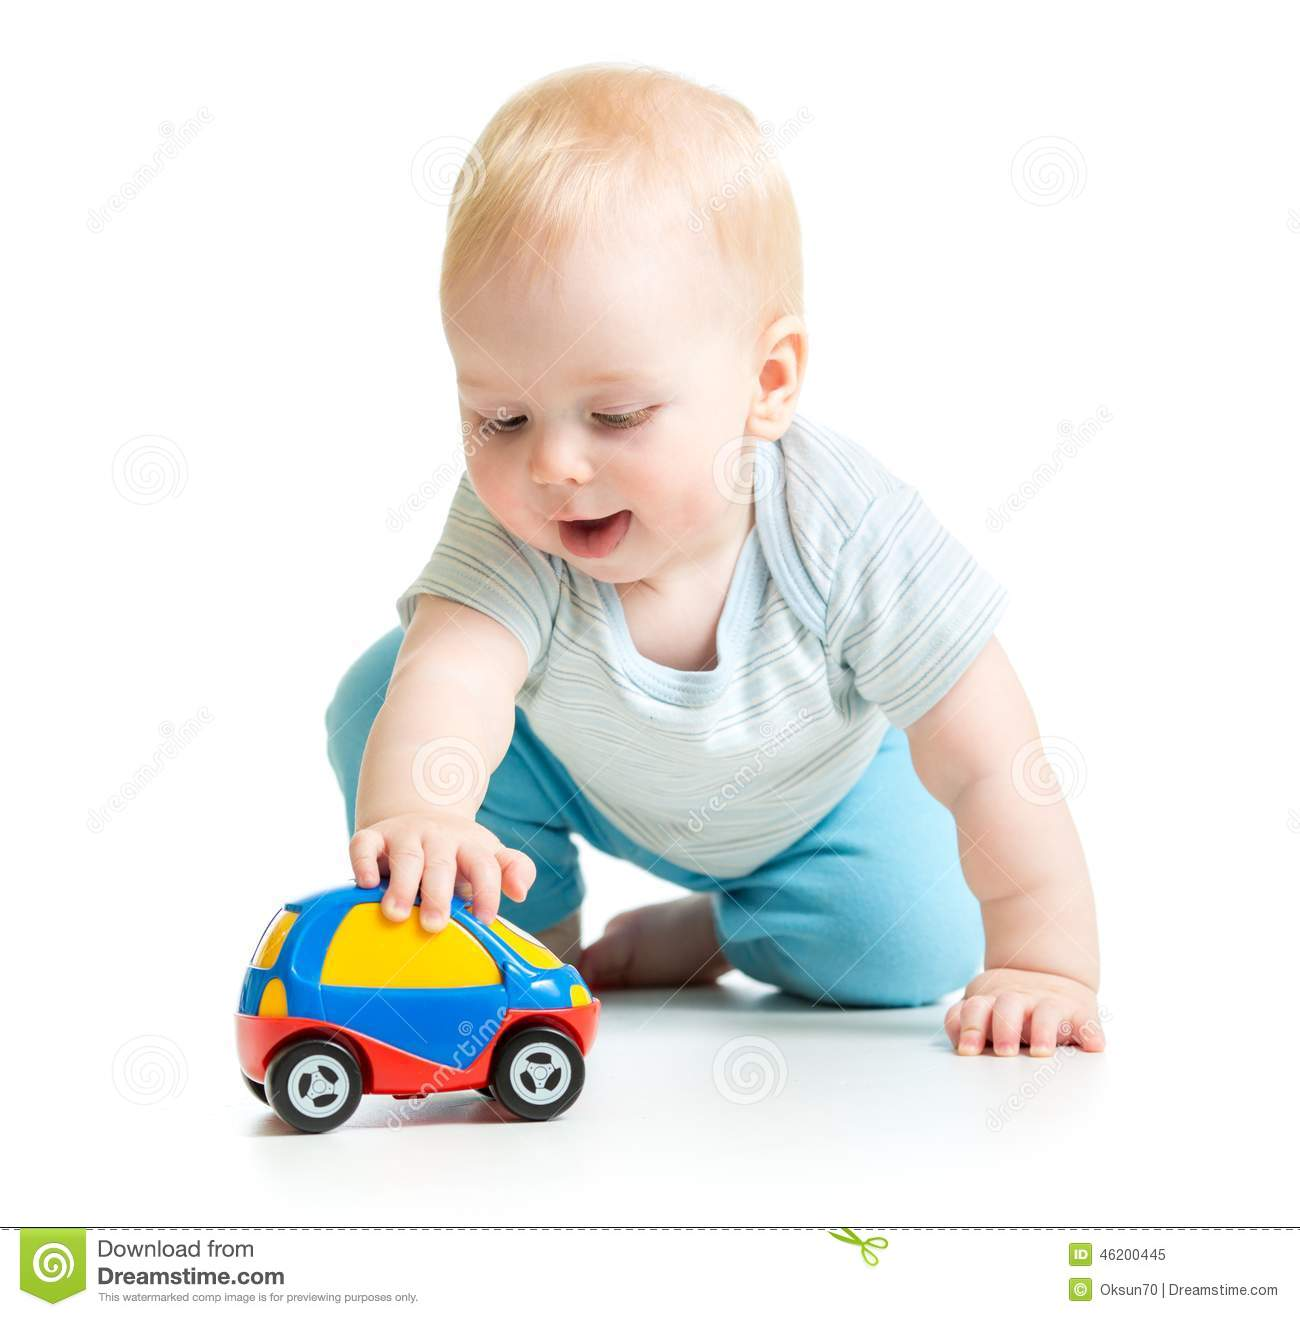 Baby Boy Toy Cars : The gallery for gt cute baby girl pictures pink dress